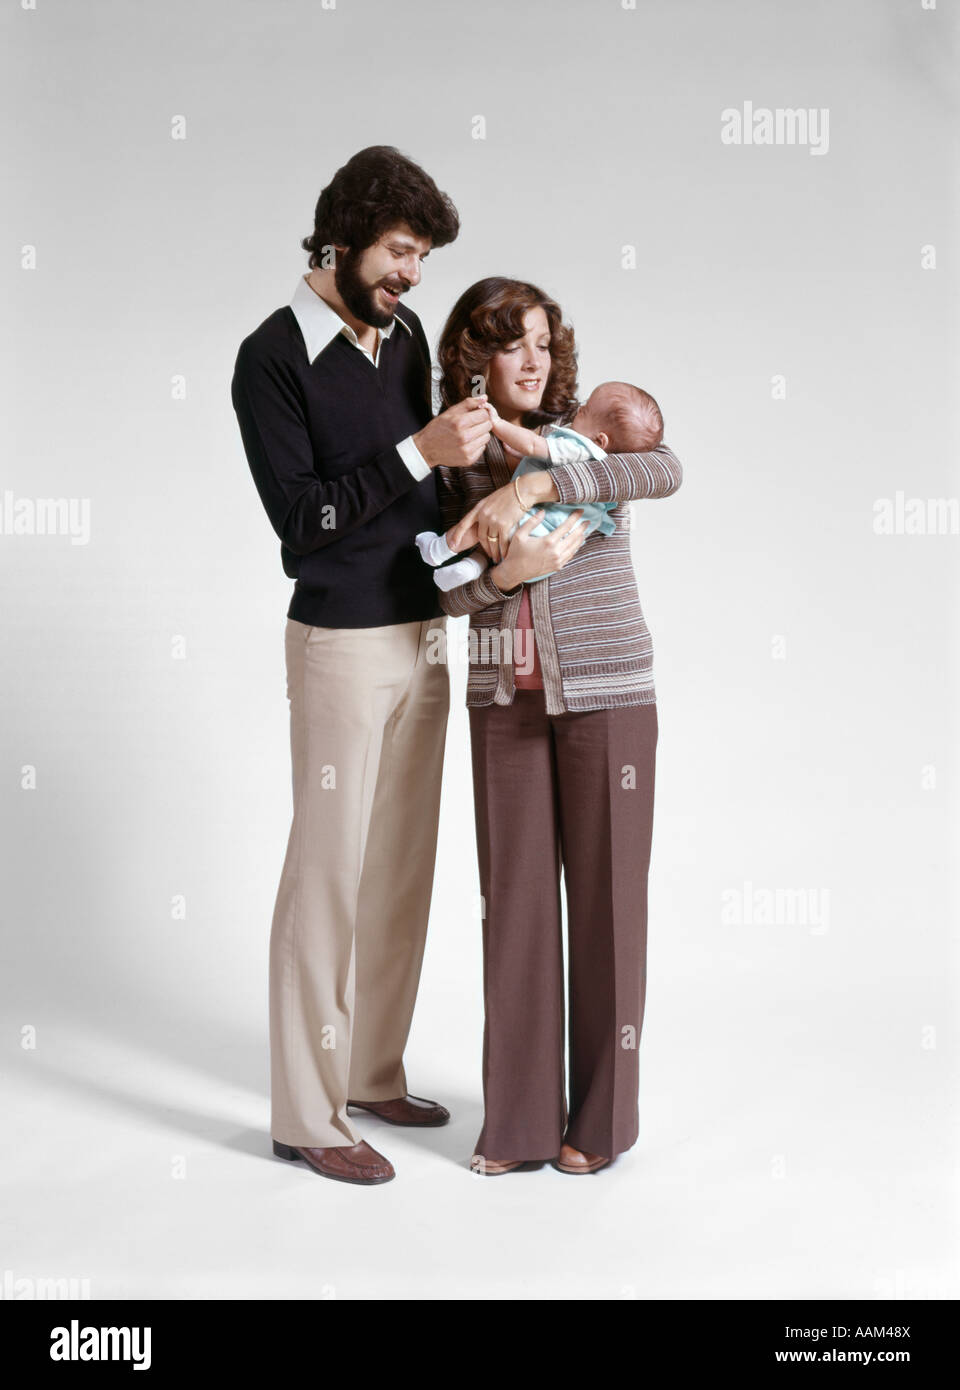 1970s FULL LENGTH PORTRAIT STANDING FAMILY 3 MOTHER FATHER BABY MAN WOMAN CHILD - Stock Image